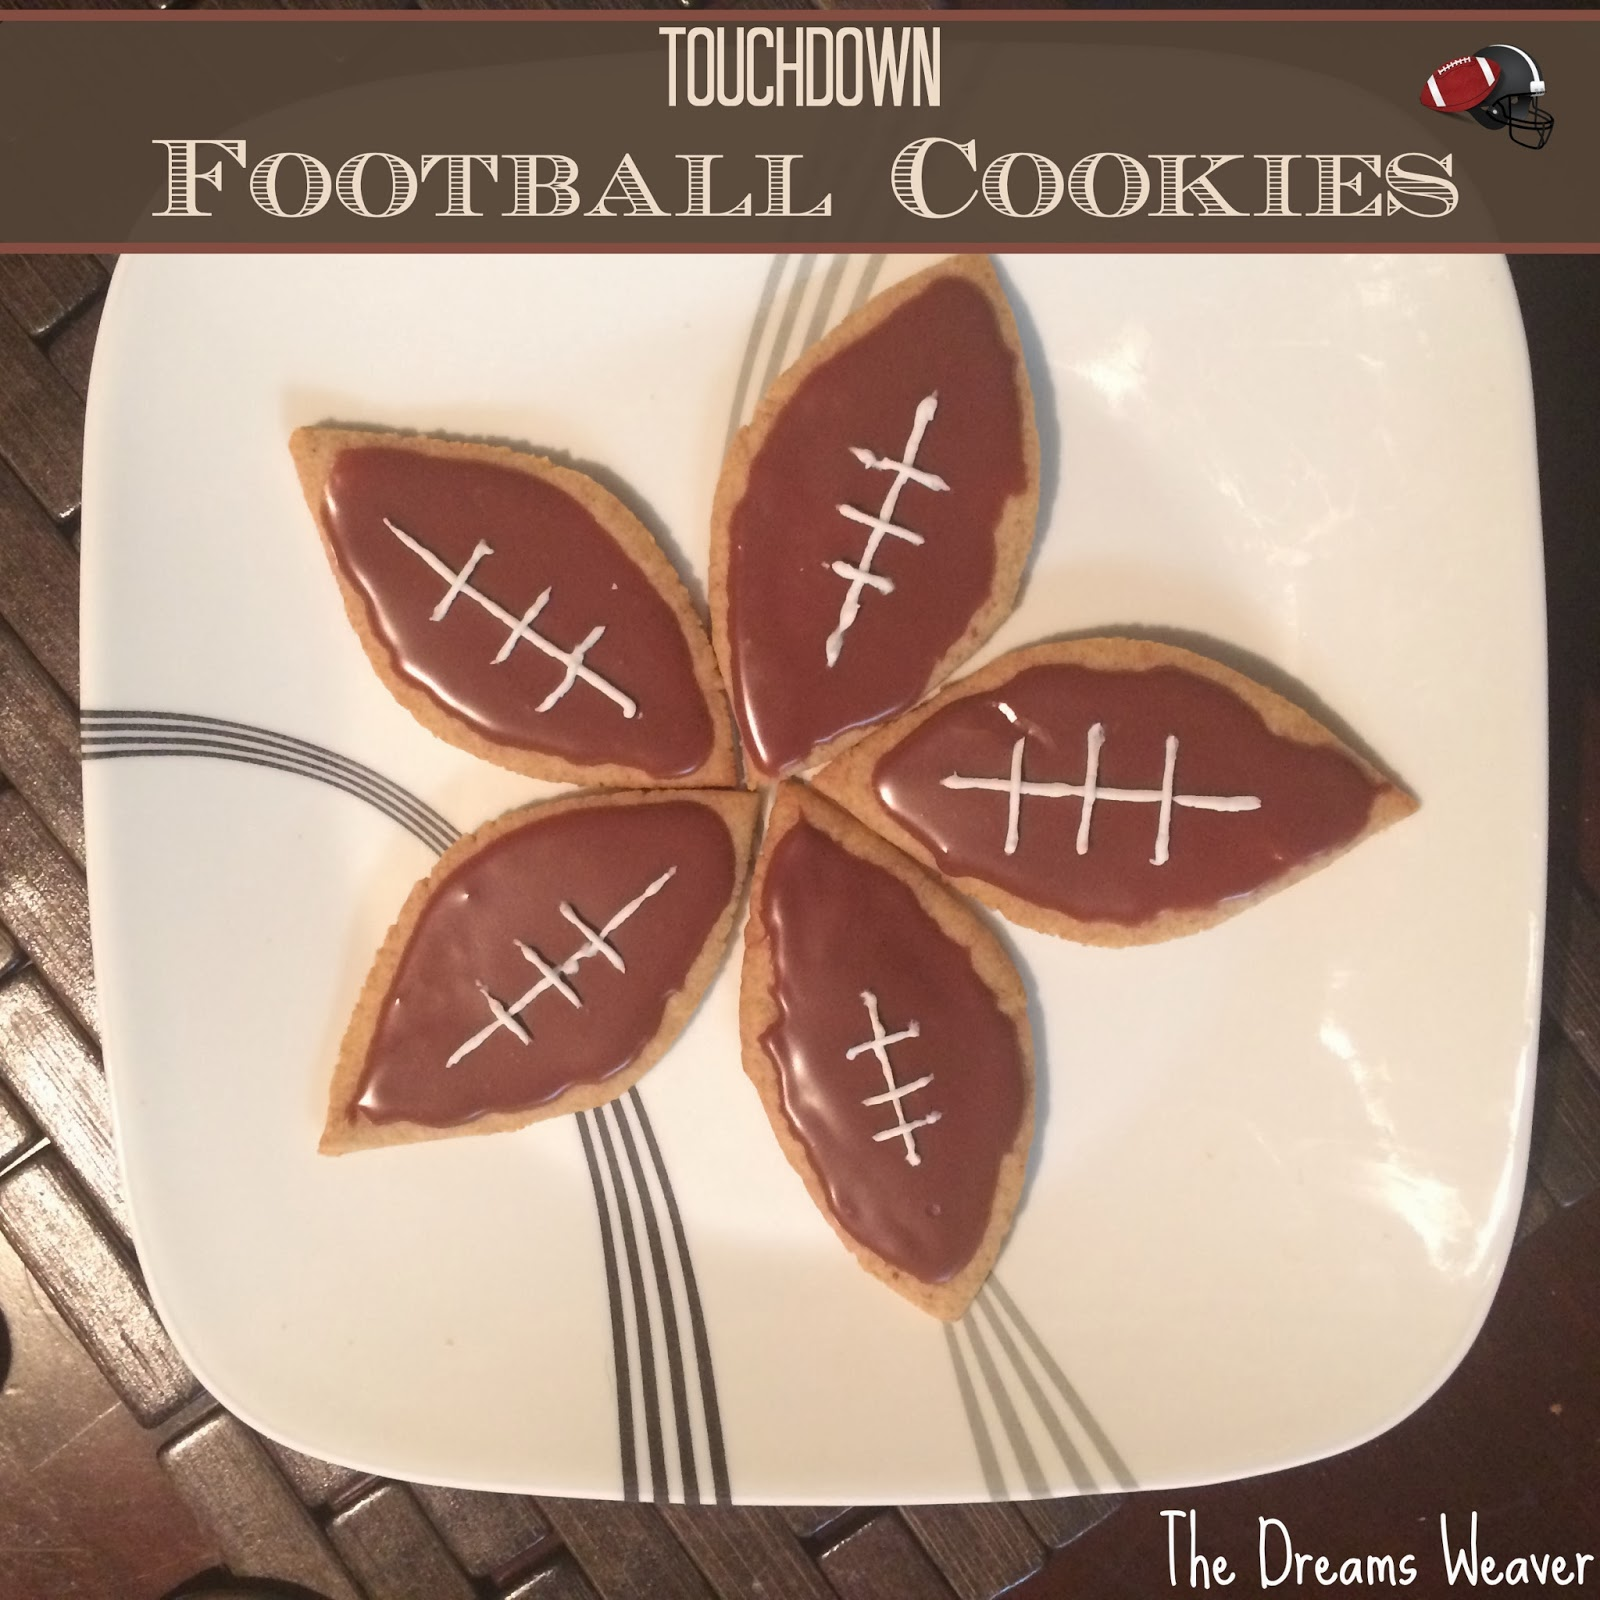 Touchdown Football Cookies